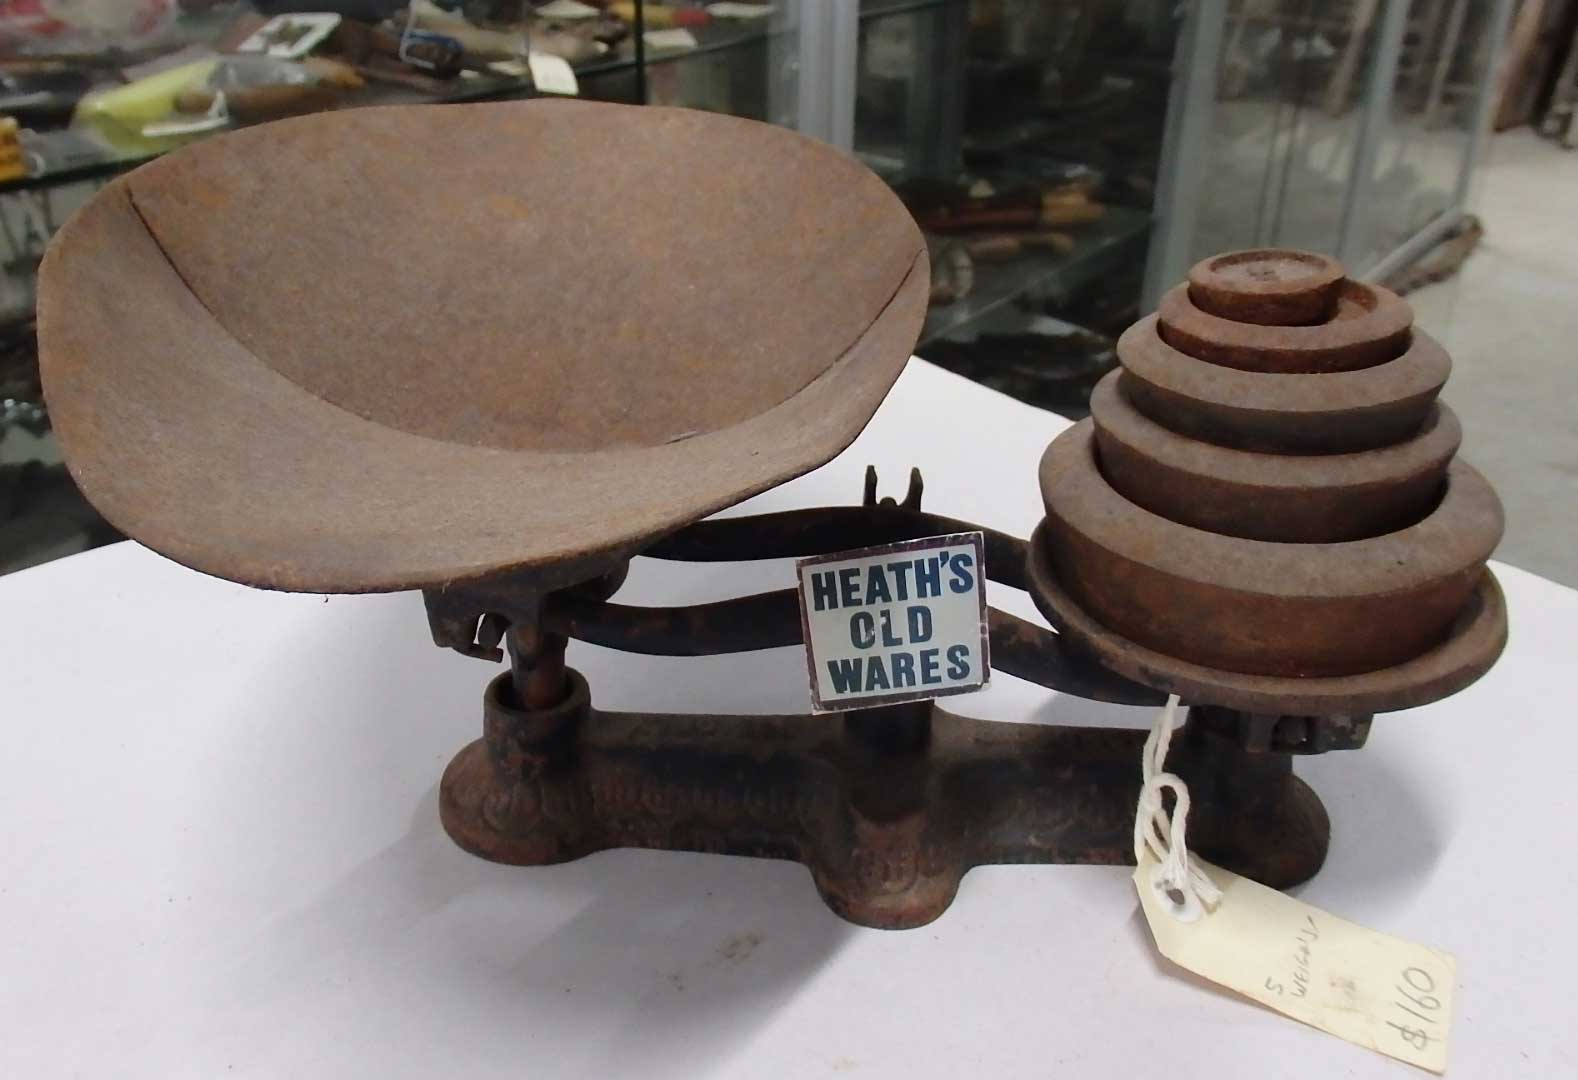 Scales with 5 weights $160 for sale at Heaths Old Wares, Collectables, Antiques & Industrial Antiques, 19-21 Broadway, Burringbar NSW 2483 Ph 0266771181 open 7 days